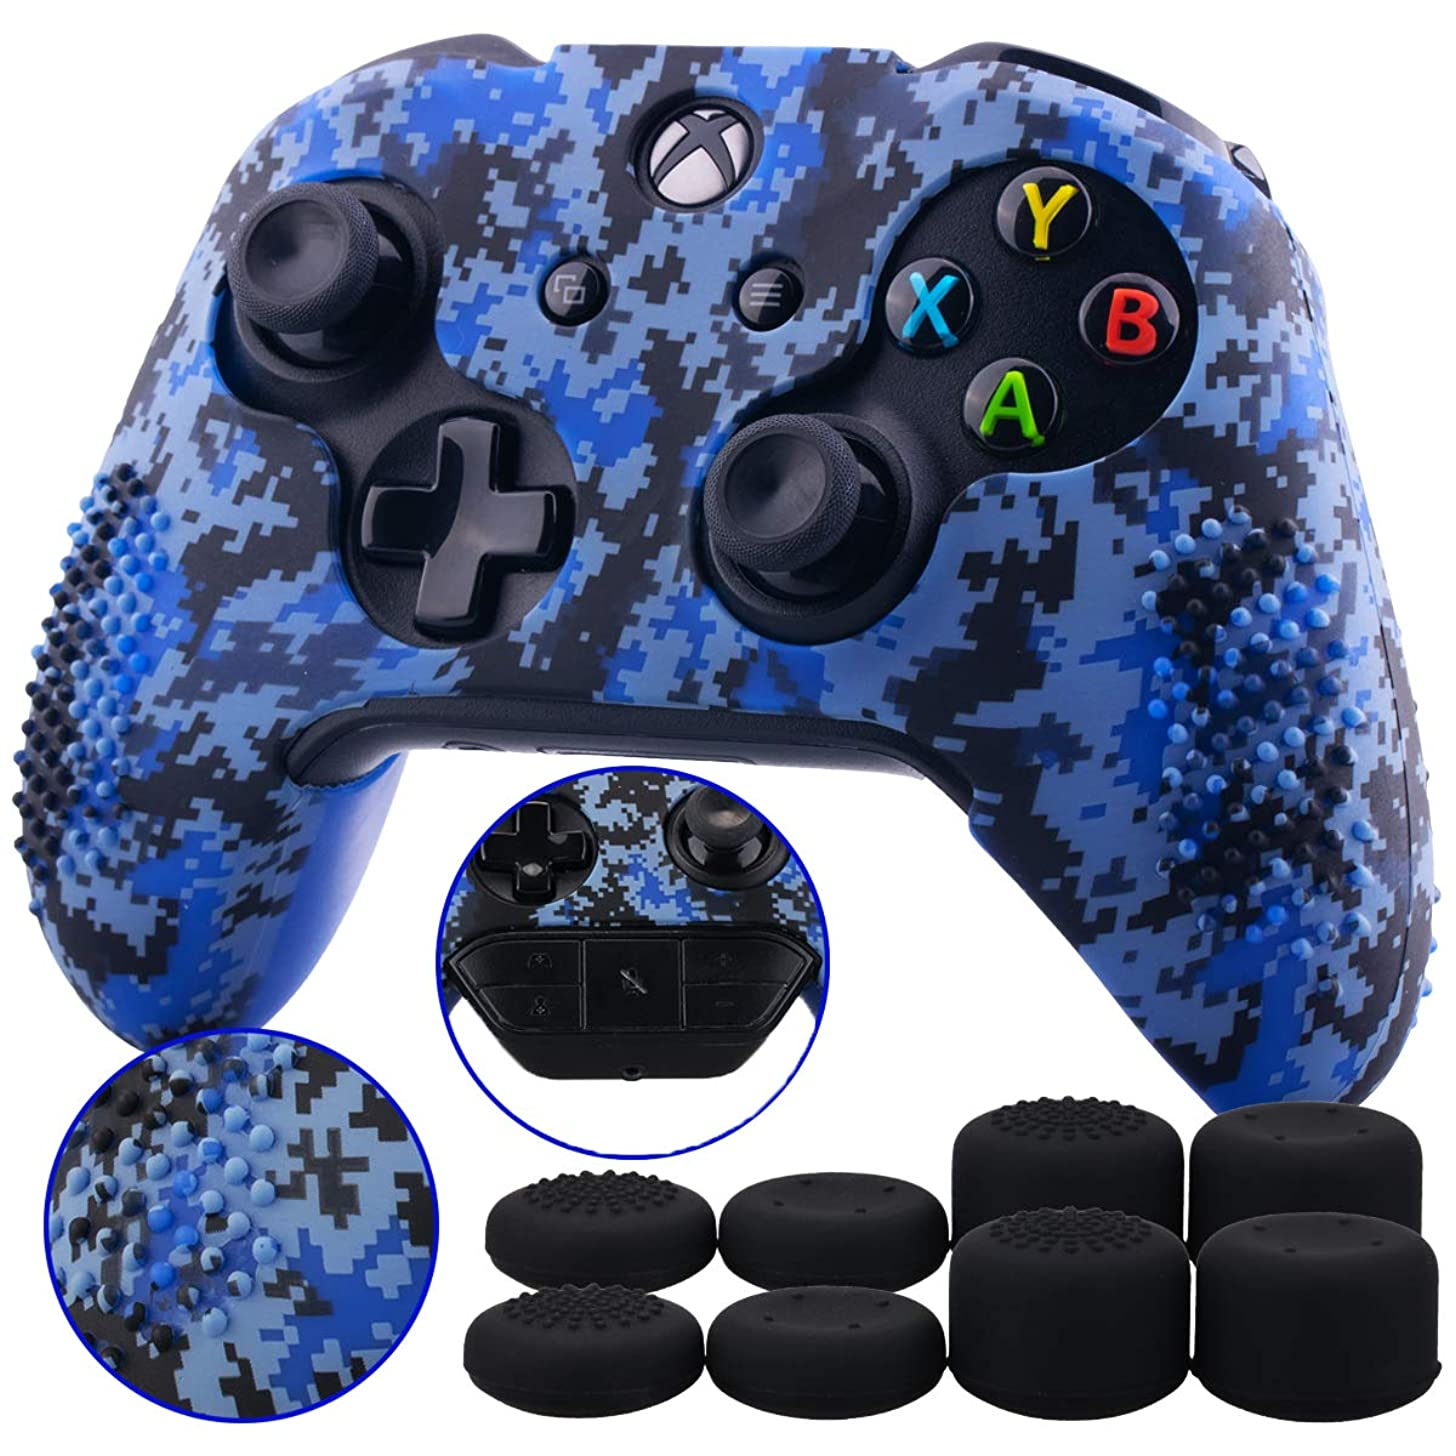 9CDeer 1 Piece of Studded Protective Customize Digital Camo Silicone Cover Skin Sleeve Case 8 Thumb Grips Analog Caps for Xbox One/S/X Controller Blue Compatible with Official Stereo Headset Adapte